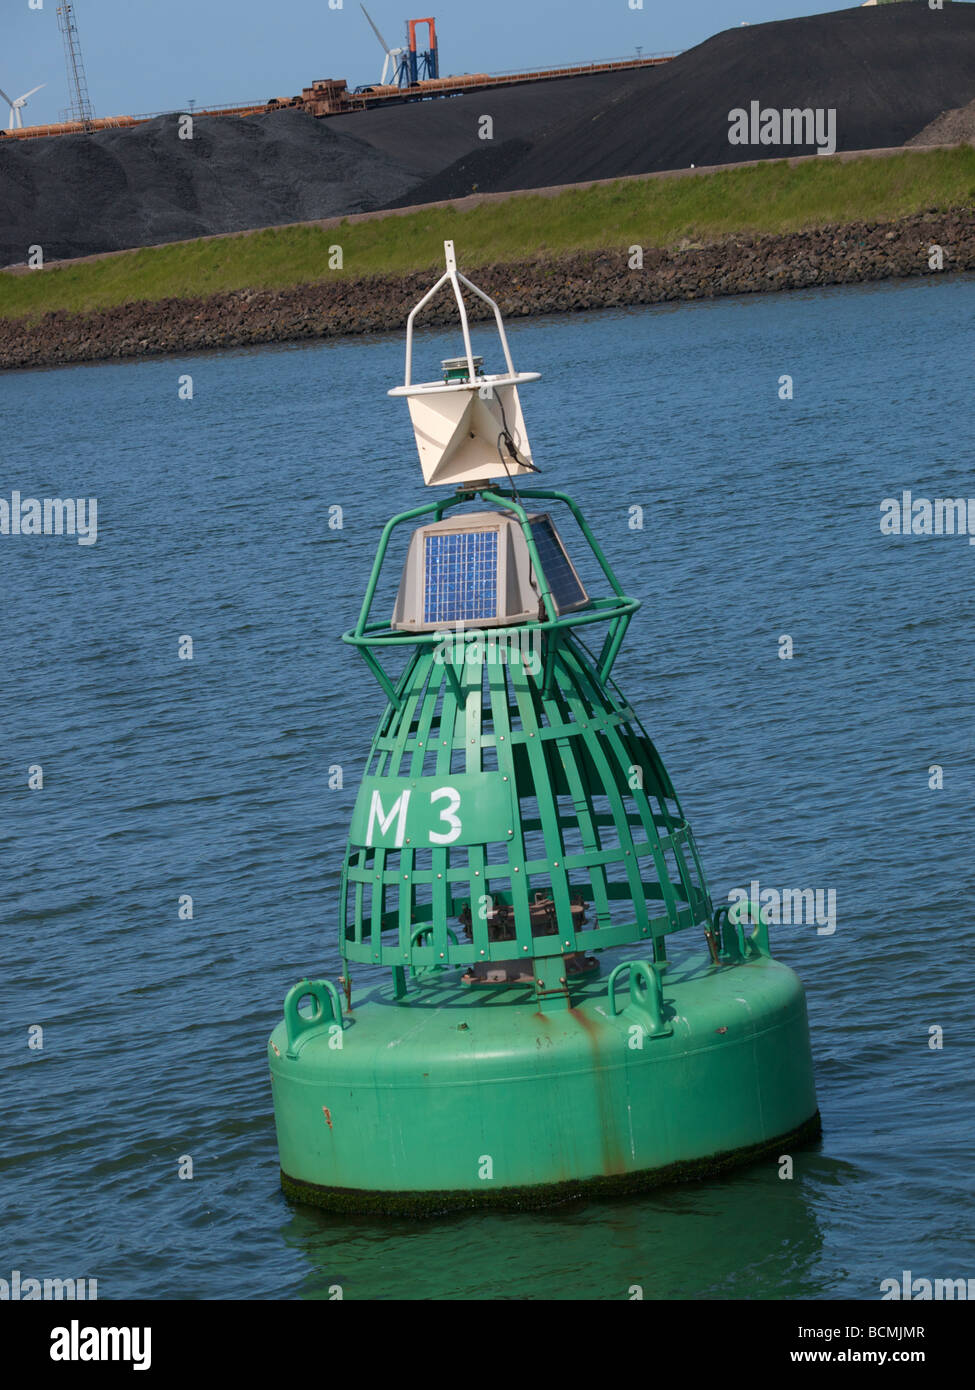 Modern green buoy in the port of Rotterdam marking the shipping lane with solar panels to power its transmitter - Stock Image